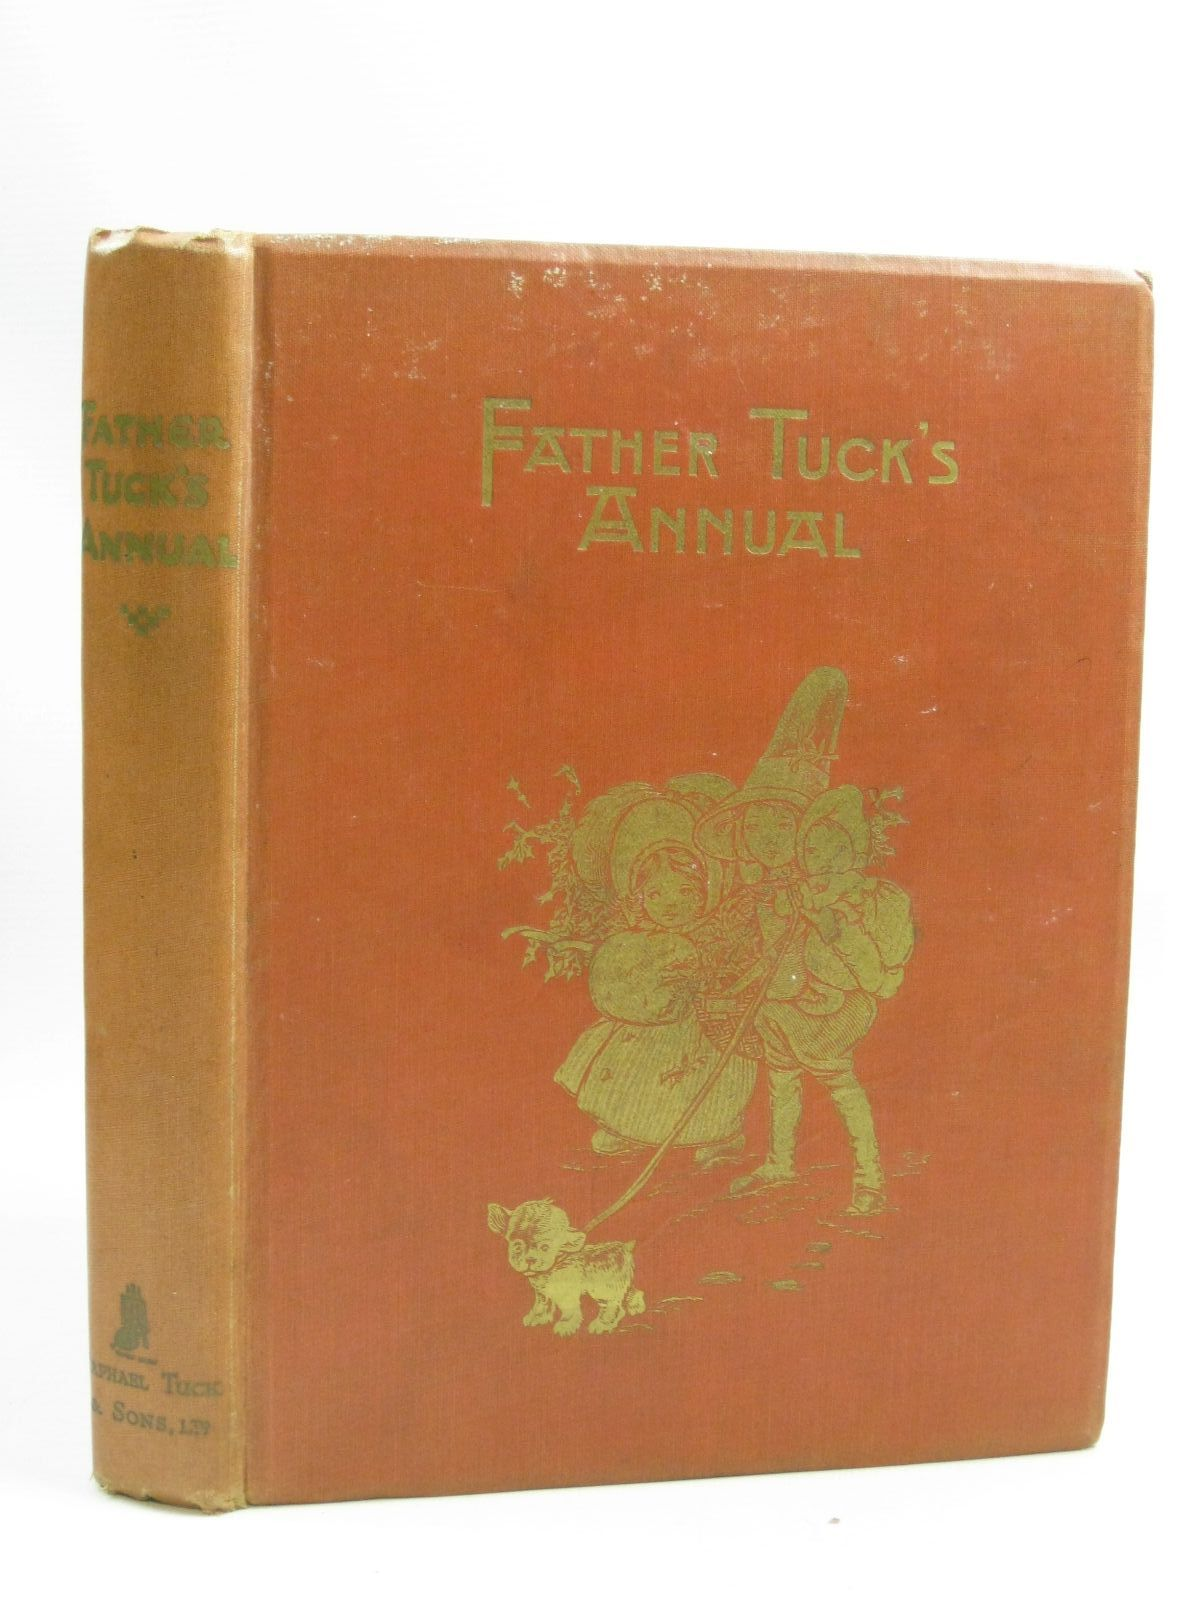 Photo of FATHER TUCK'S ANNUAL - 20TH YEAR written by Vredenburg, Edric Gale, Norman Wilkins, Adela Floyd, Grace C. et al, illustrated by Robinson, T.H. Attwell, Mabel Lucie Wain, Louis Petherick, Rosa C. Cobb, Ruth et al., published by Raphael Tuck & Sons Ltd. (STOCK CODE: 1315207)  for sale by Stella & Rose's Books